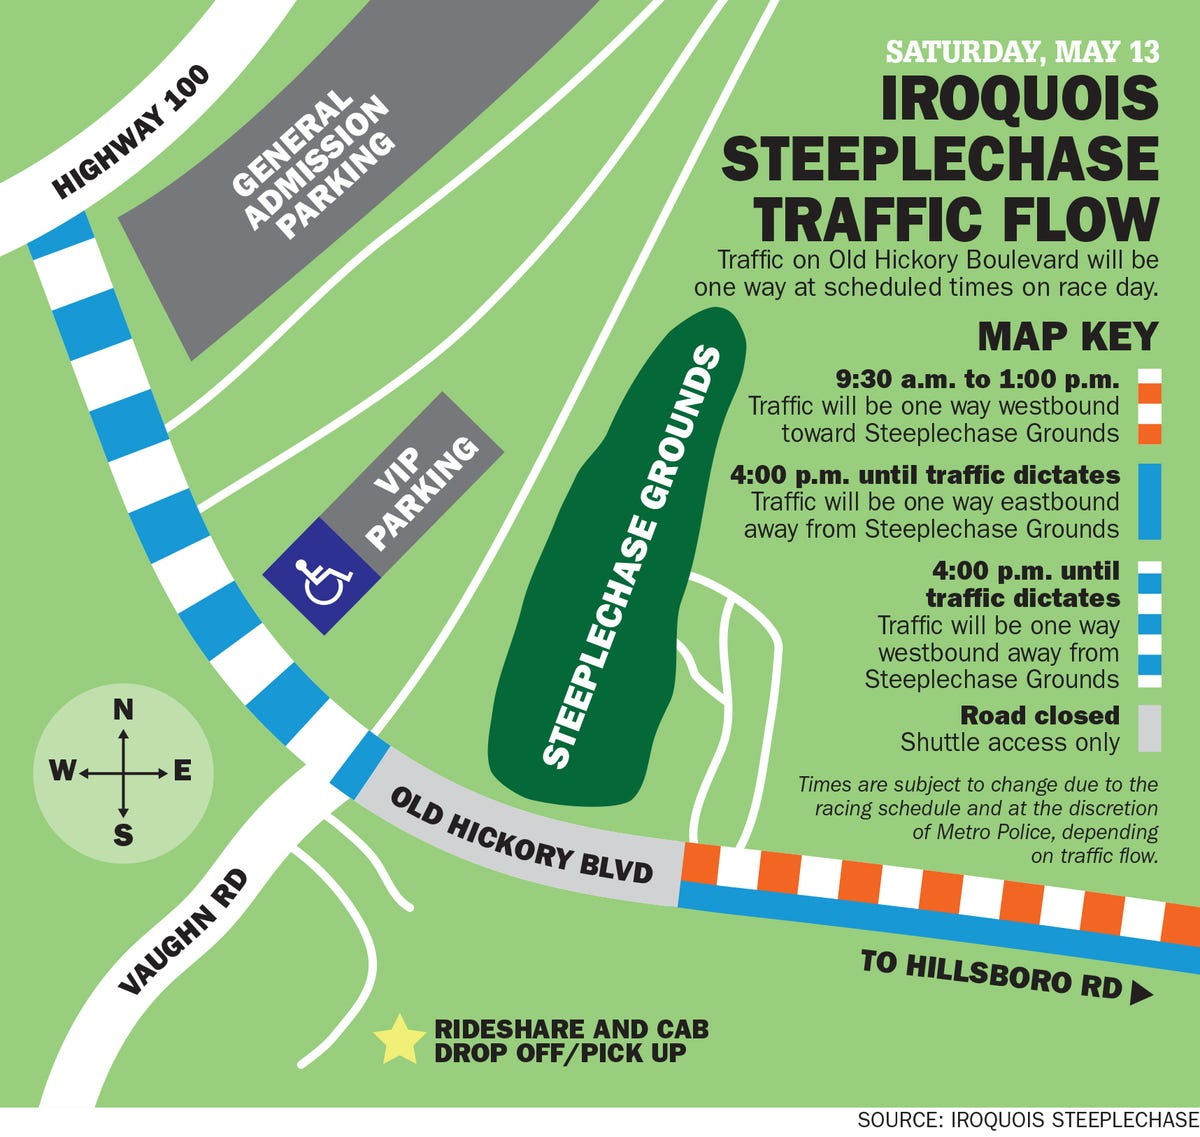 Iroquois Steeplechase to close Old Hickory Boulevard